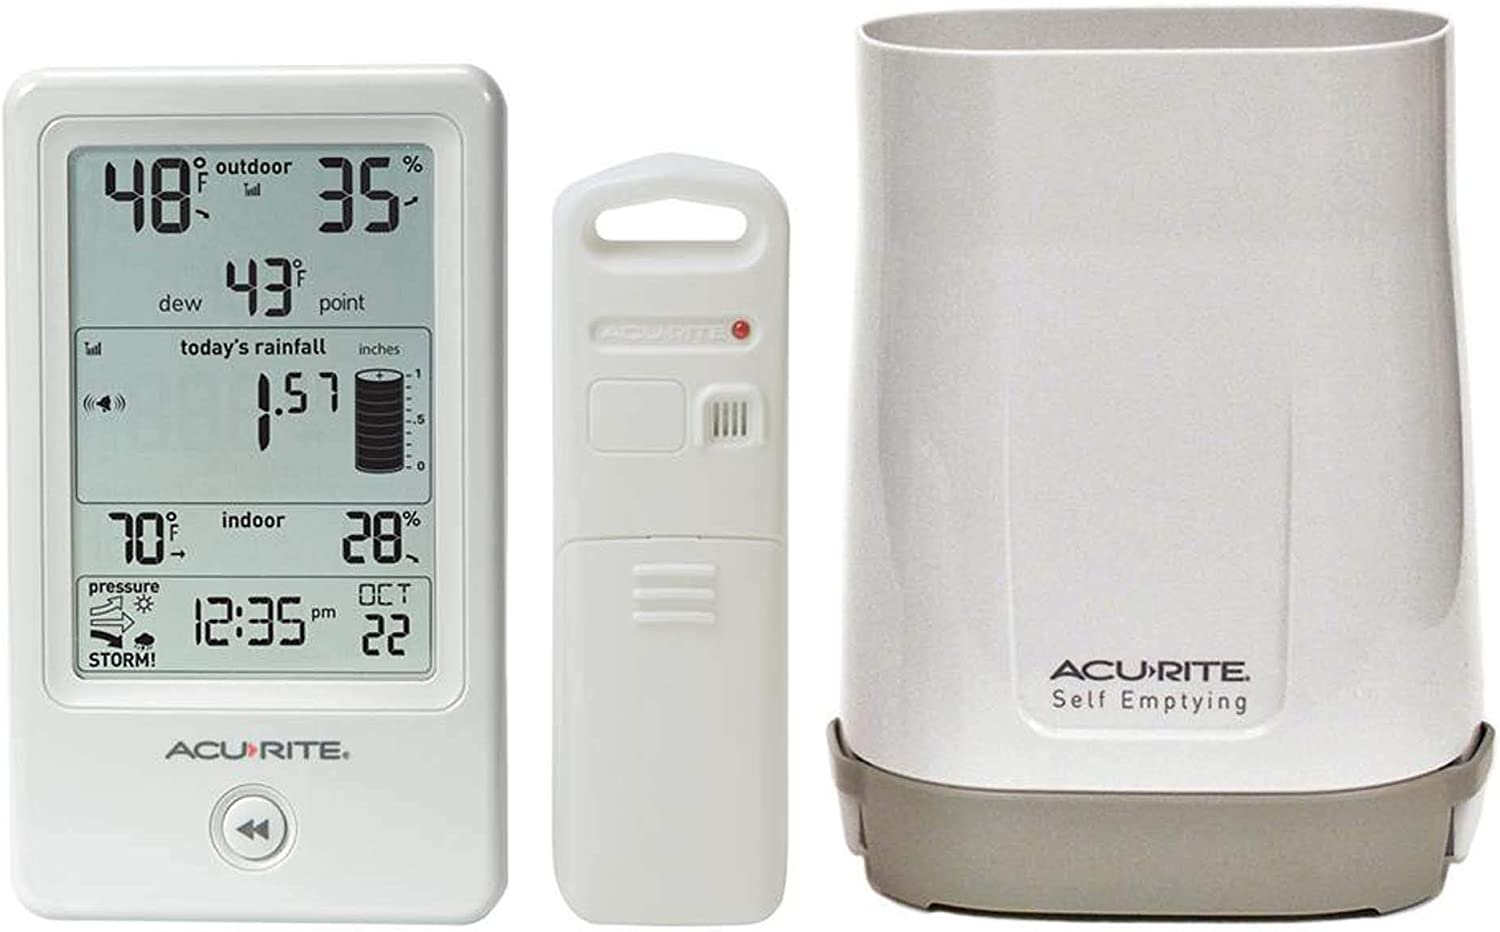 AcuRite Rain Gauge with Indoor/Outdoor Temperature - Digital LCD - Weather Station100 ft - Temperature, Rainfall, Humidity, Atmospheric Pressure - Desktop, Wall Mountable